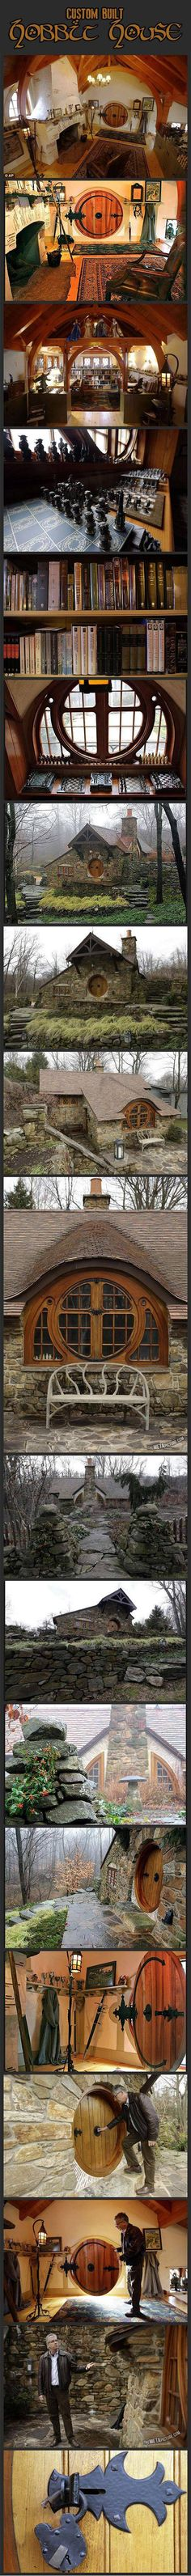 A custom built Hobbit house that is too cool for words.